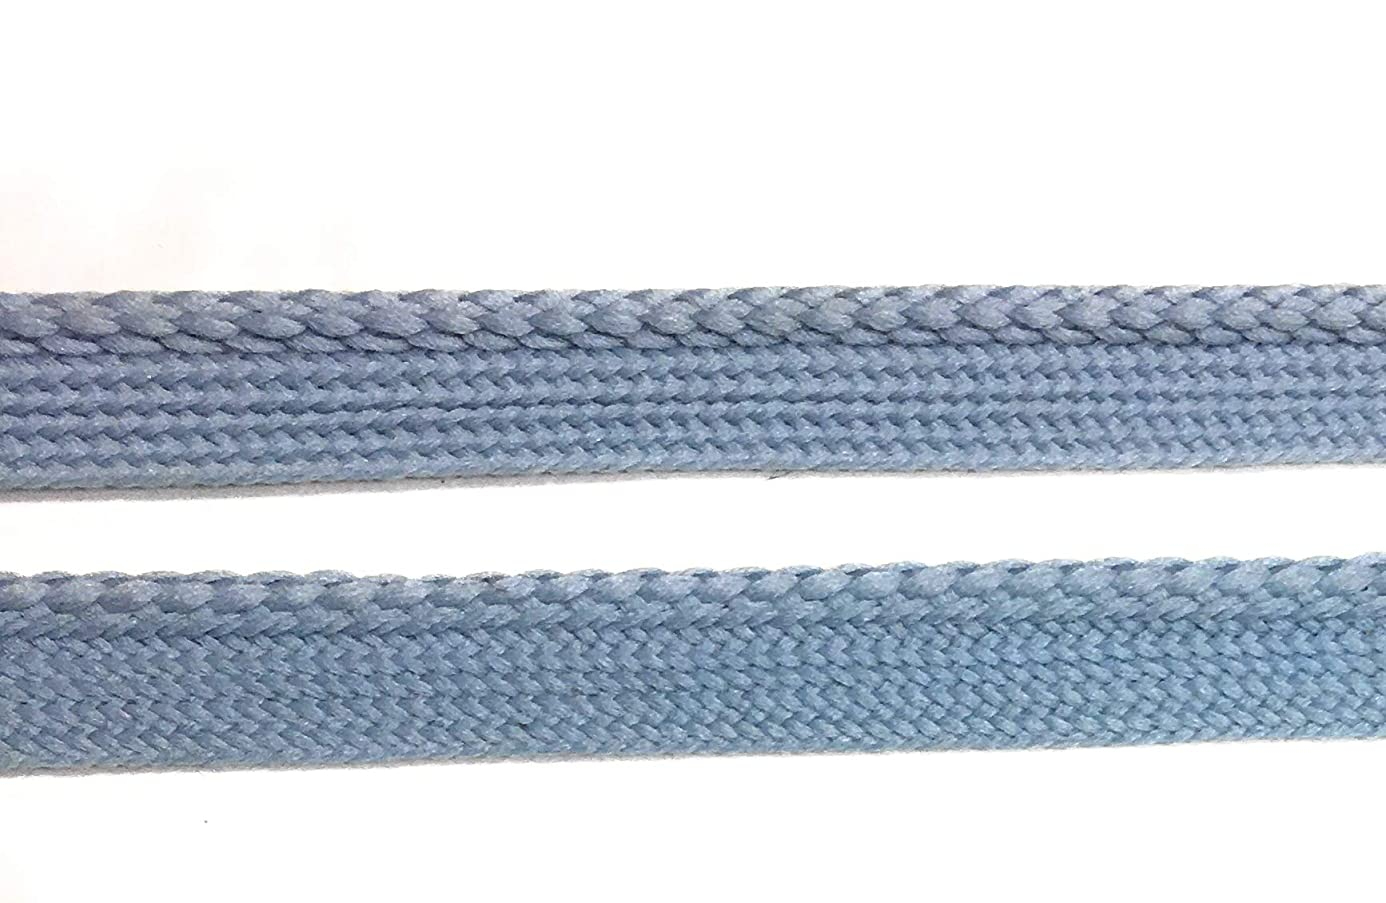 French Blue Piping,Smoked Blue Cord Edge Trim-Weaved for Clothing Pillows, Lamps, Draperies 5 Yards Pi-128 kew7334728